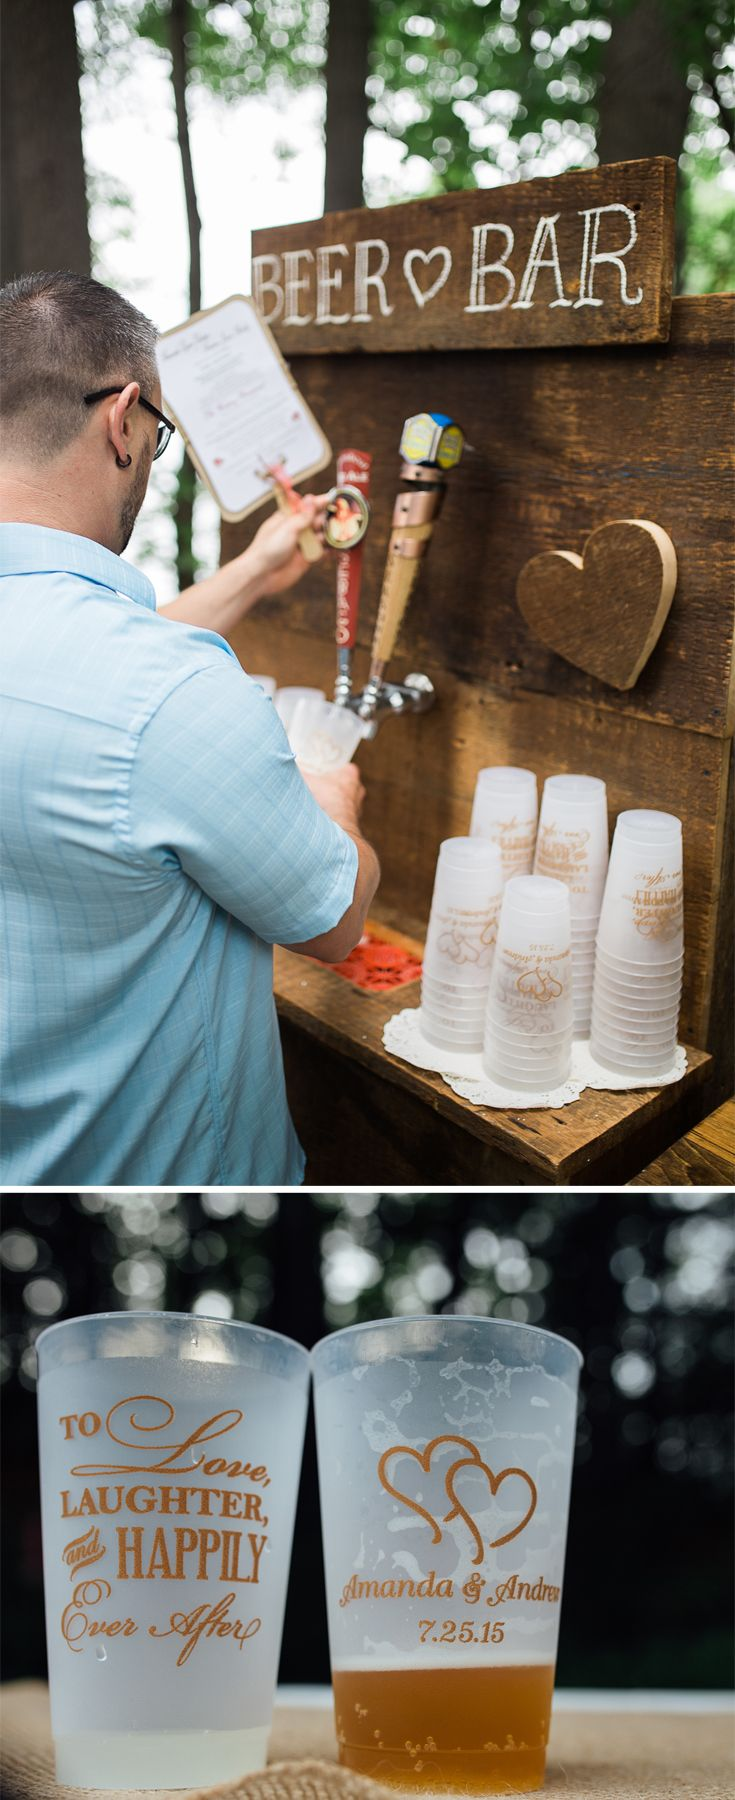 Diy beer bar wedding